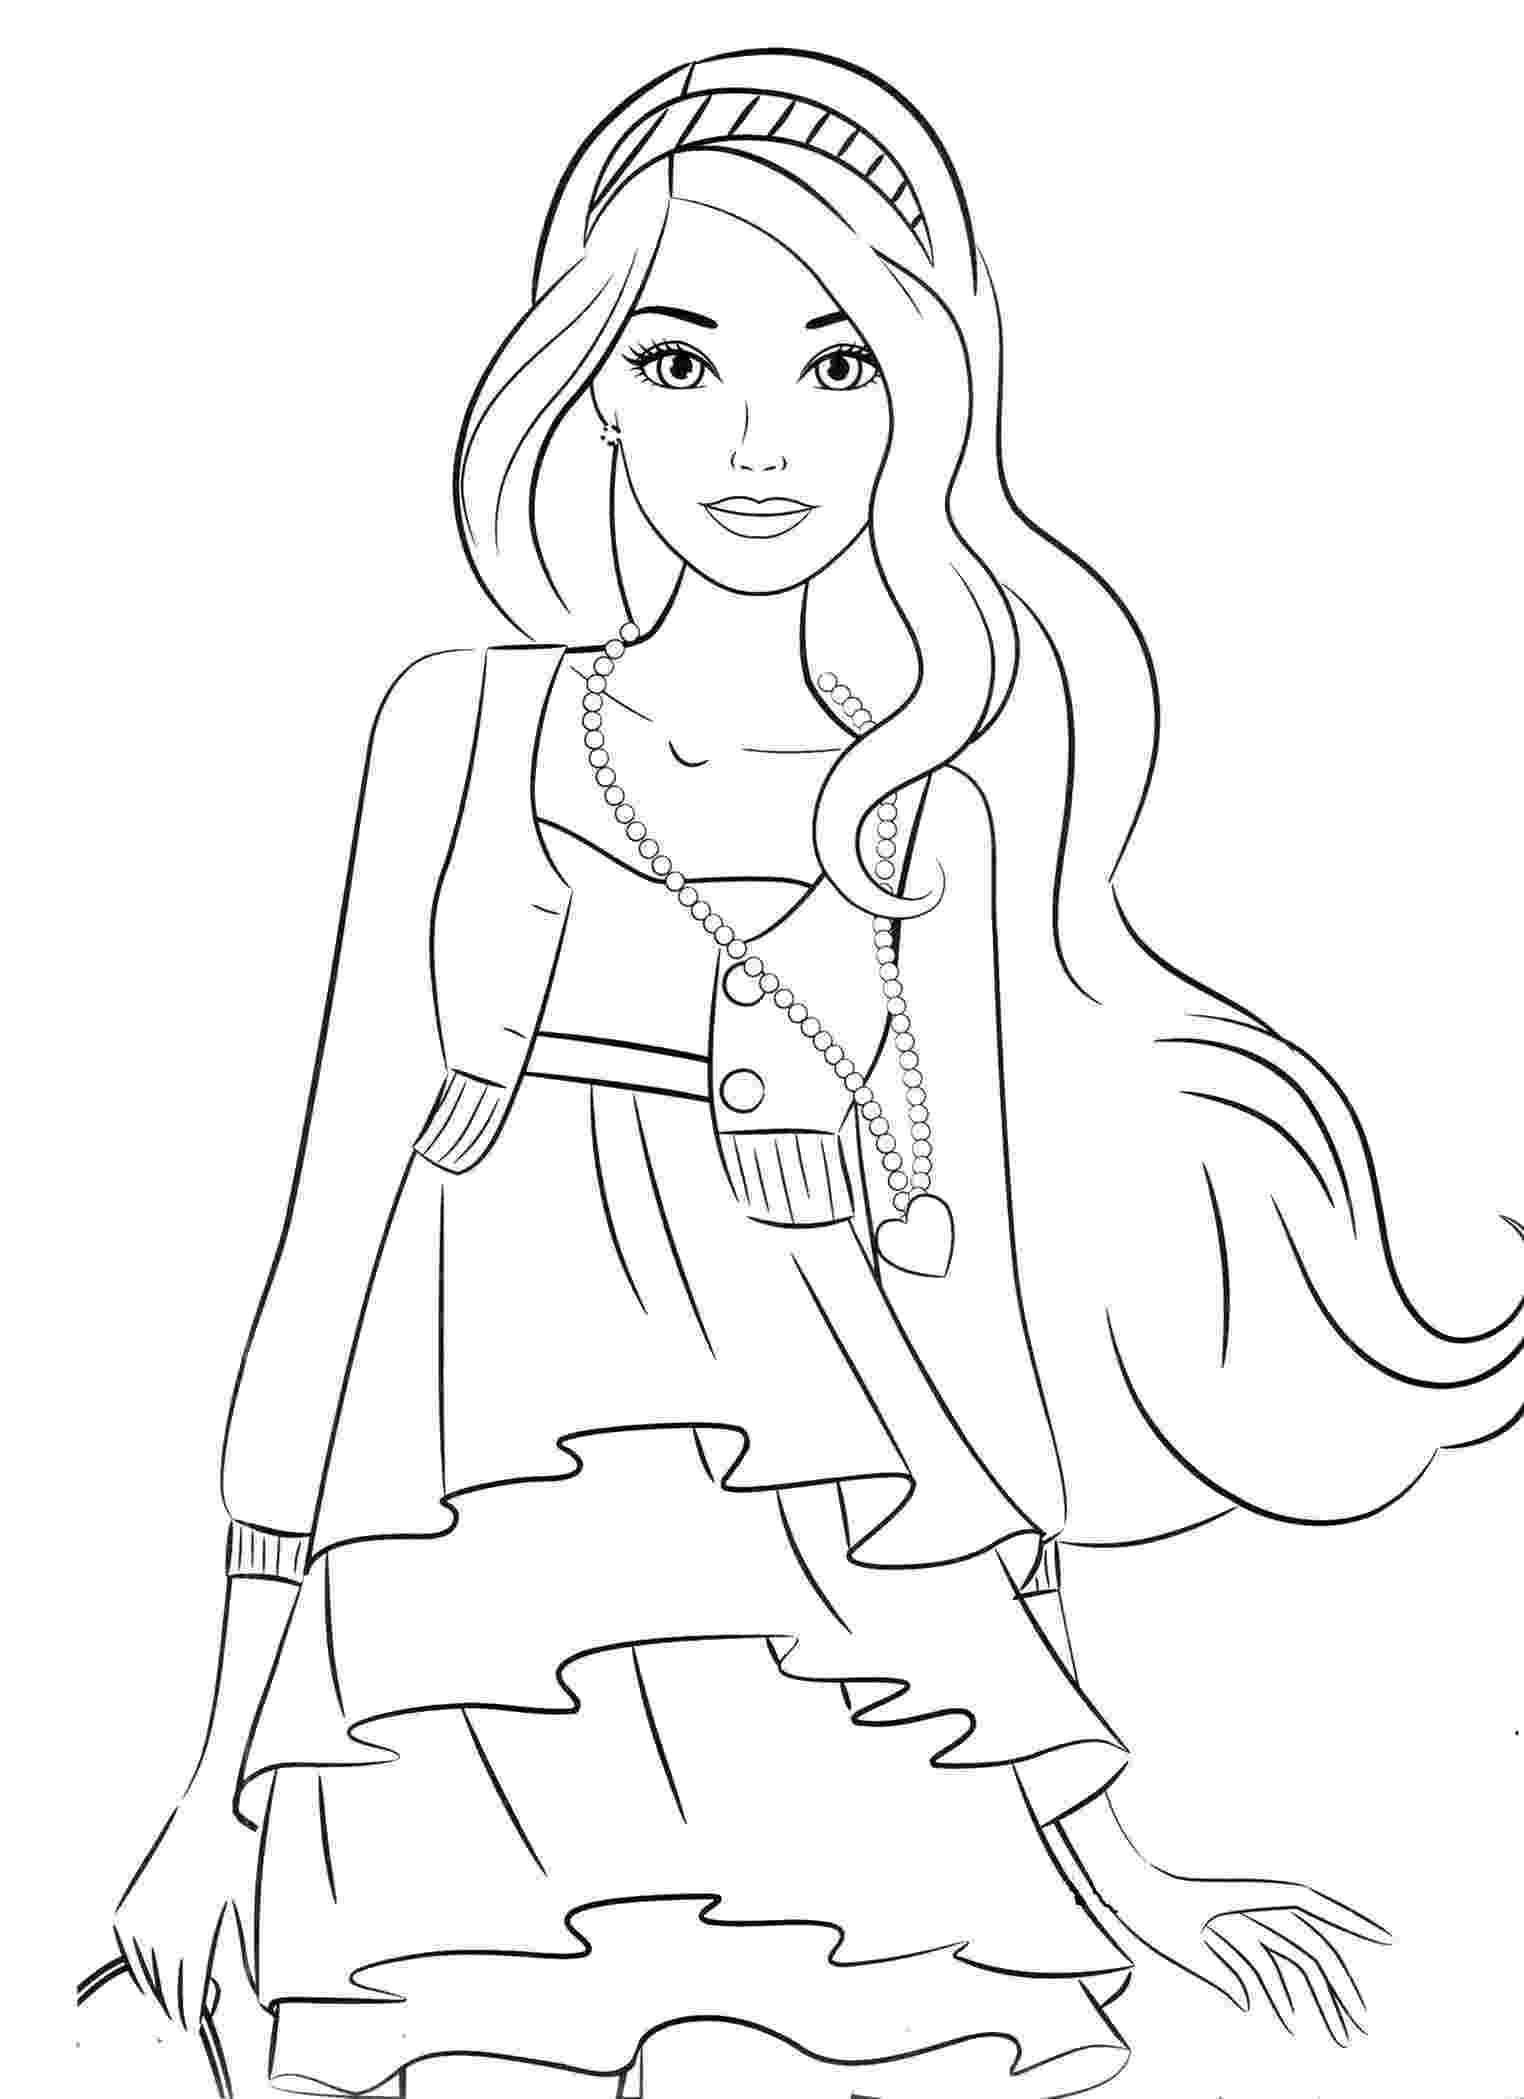 printable coloring sheets for girls coloring pages for 8910 year old girls to download and printable for girls sheets coloring